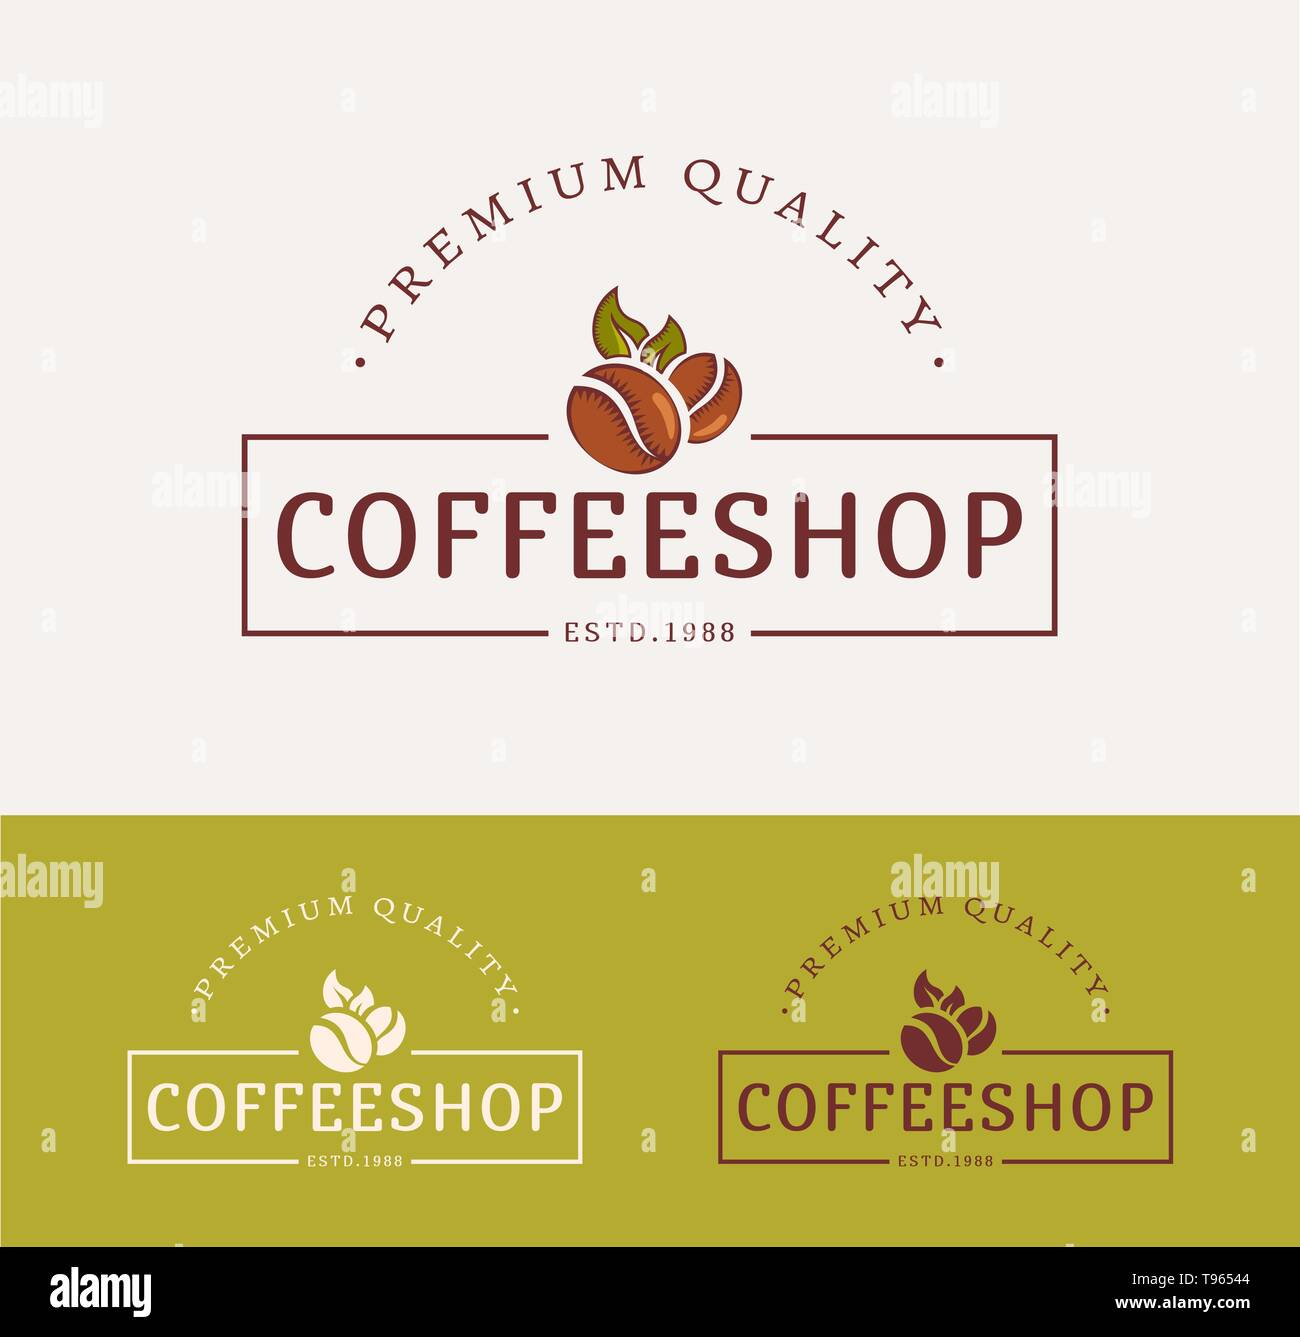 Coffee shop logos. Templates for сolor and monochrome versions. Logotypes isolated on clean background. Vector illustration. - Stock Vector